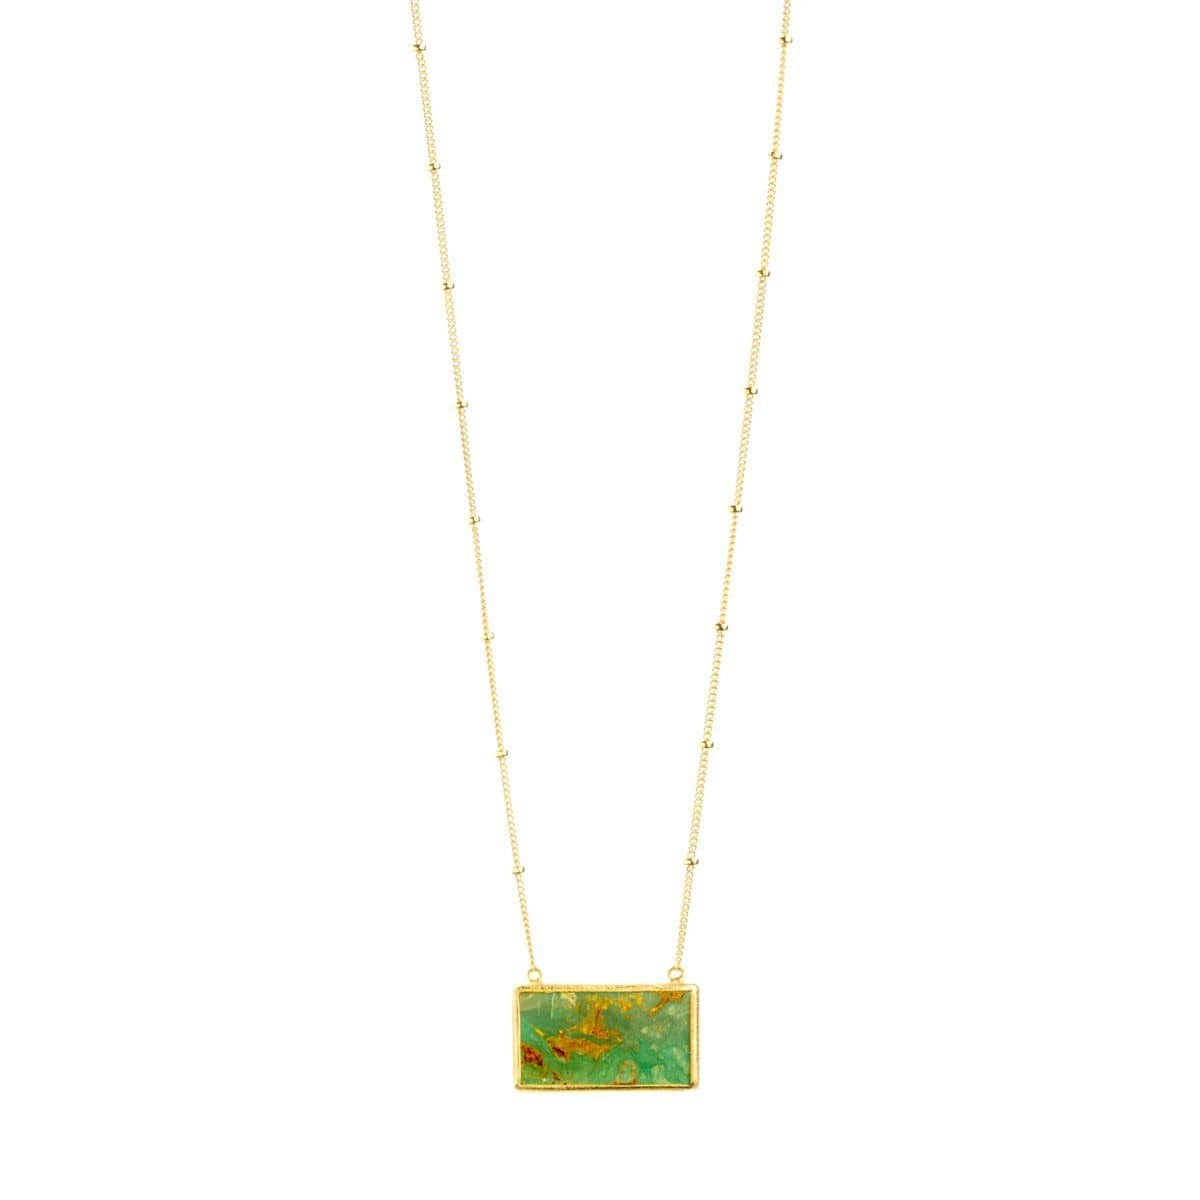 Nirvana 22k Gold Plated Turquoise Necklace - G7012N-Nina Nguyen-Renee Taylor Gallery